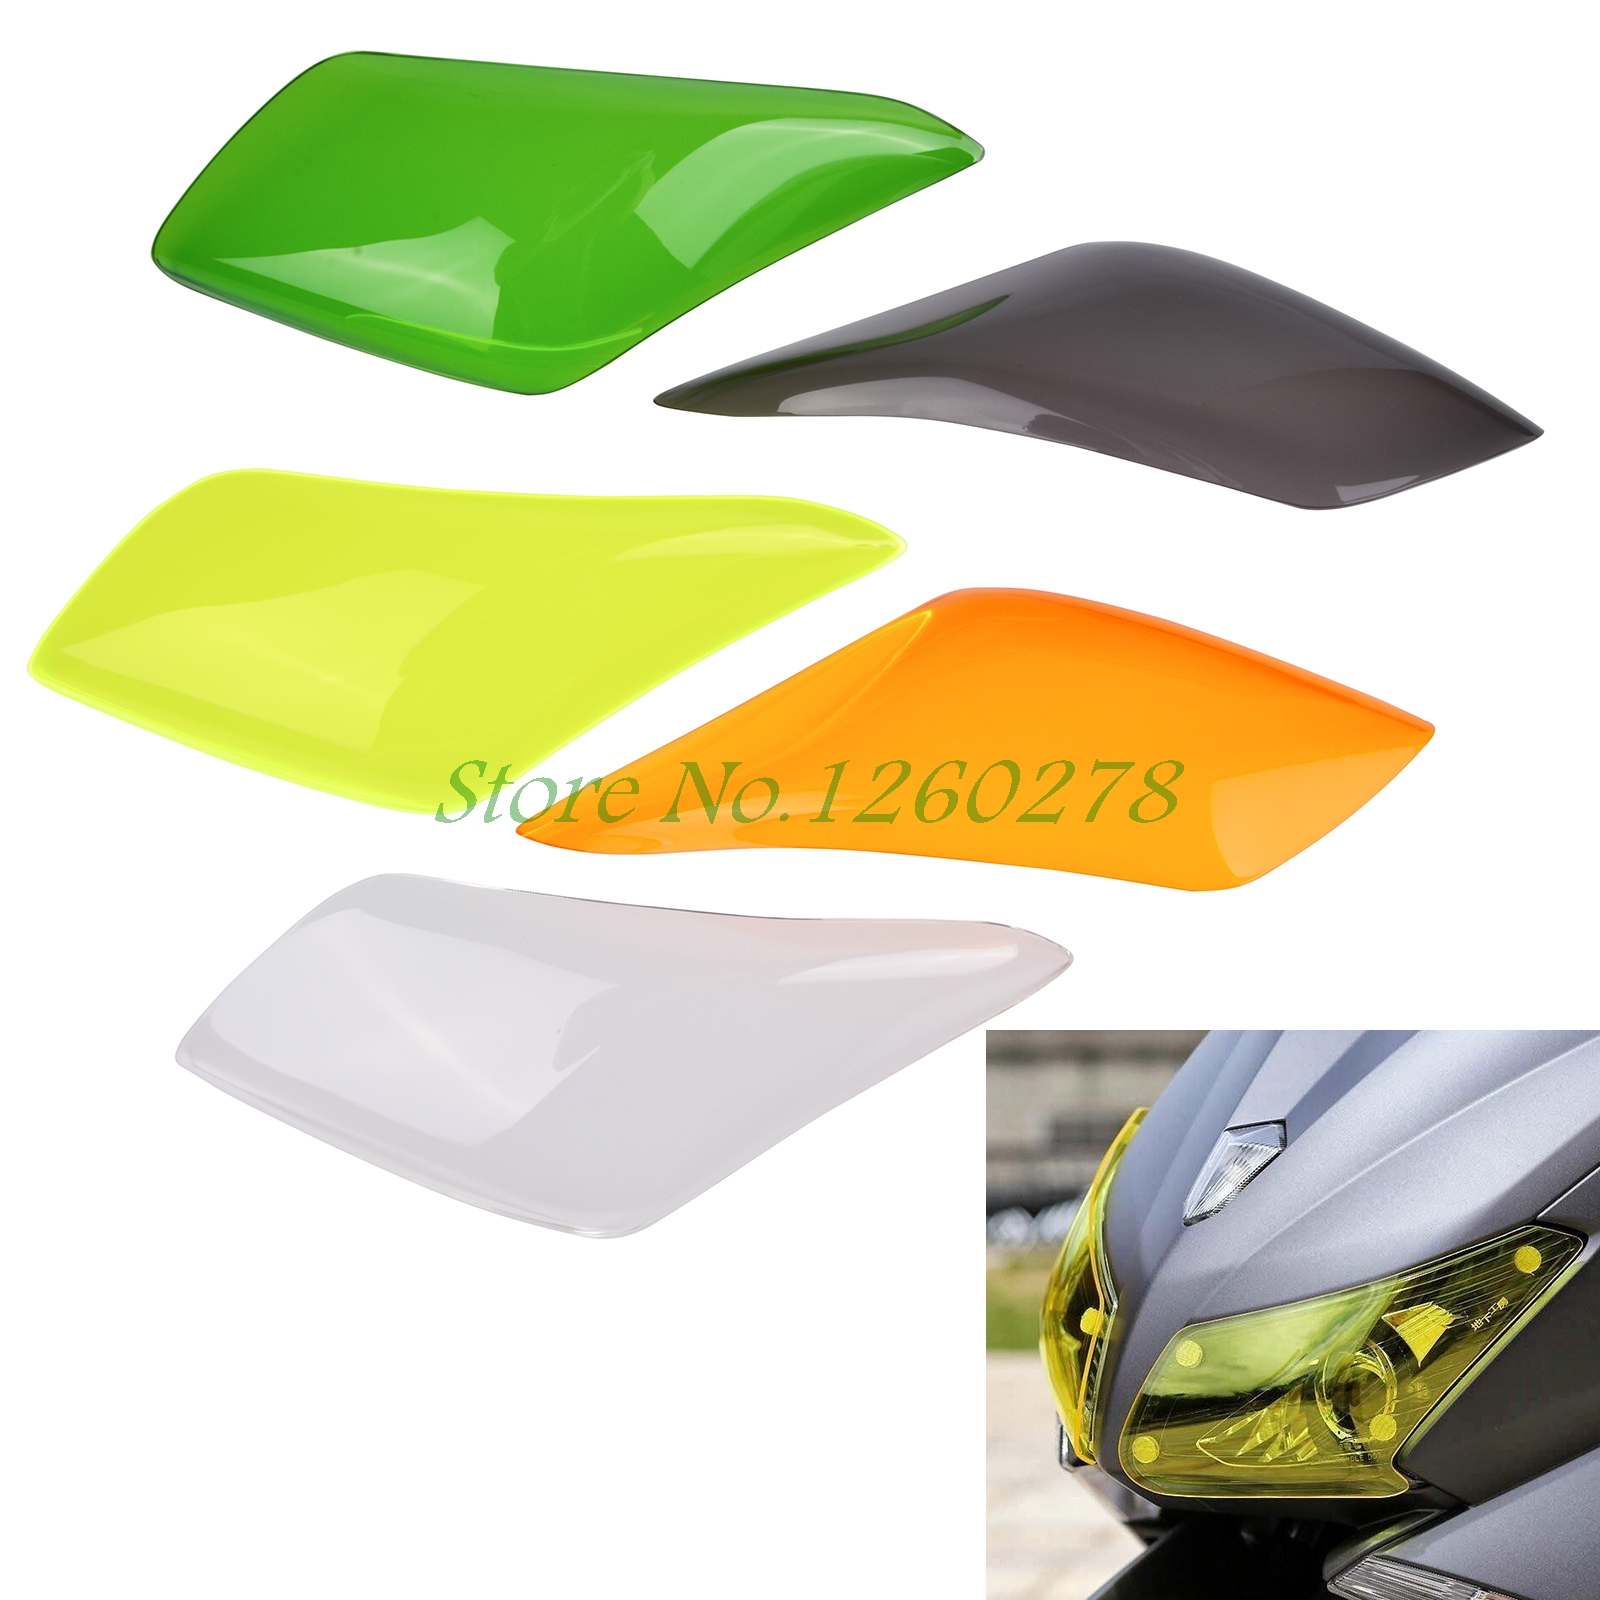 Motorcycle Headlight Screen Guard Cover Protector Windshield For YAMAHA TMAX530 T-MAX 530 2015 2016 new for yamaha tmax 530 2012 2013 2014 2015 2016 motorcycle abs headlight screen protective cover t max t max